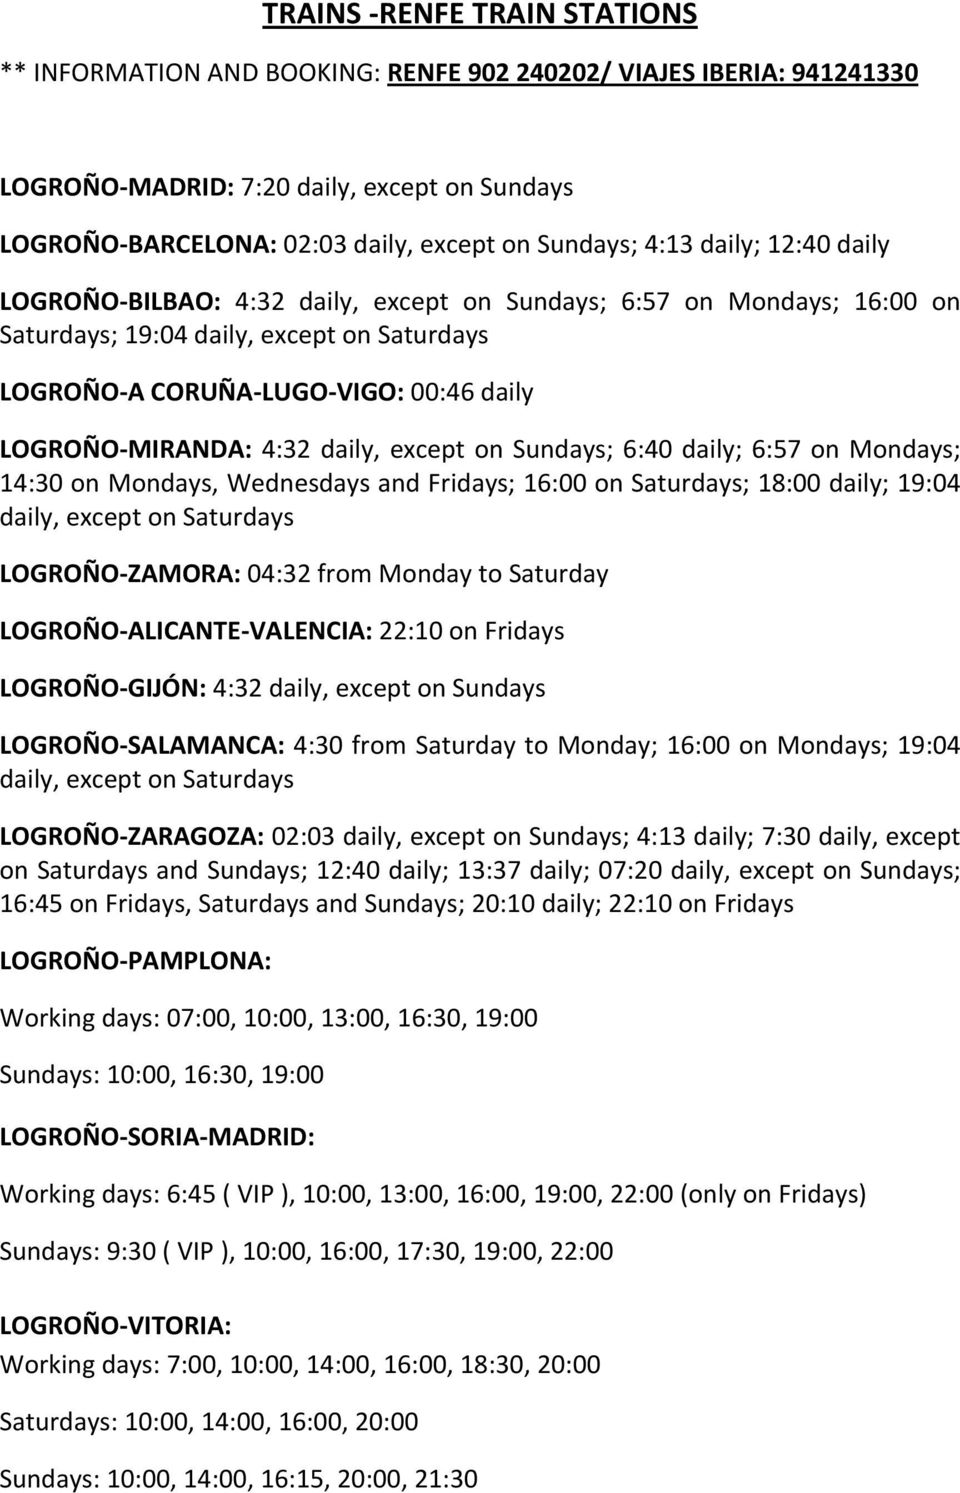 4:32 daily, except on Sundays; 6:40 daily; 6:57 on Mondays; 14:30 on Mondays, Wednesdays and Fridays; 16:00 on Saturdays; 18:00 daily; 19:04 daily, except on Saturdays LOGROÑO ZAMORA: 04:32 from